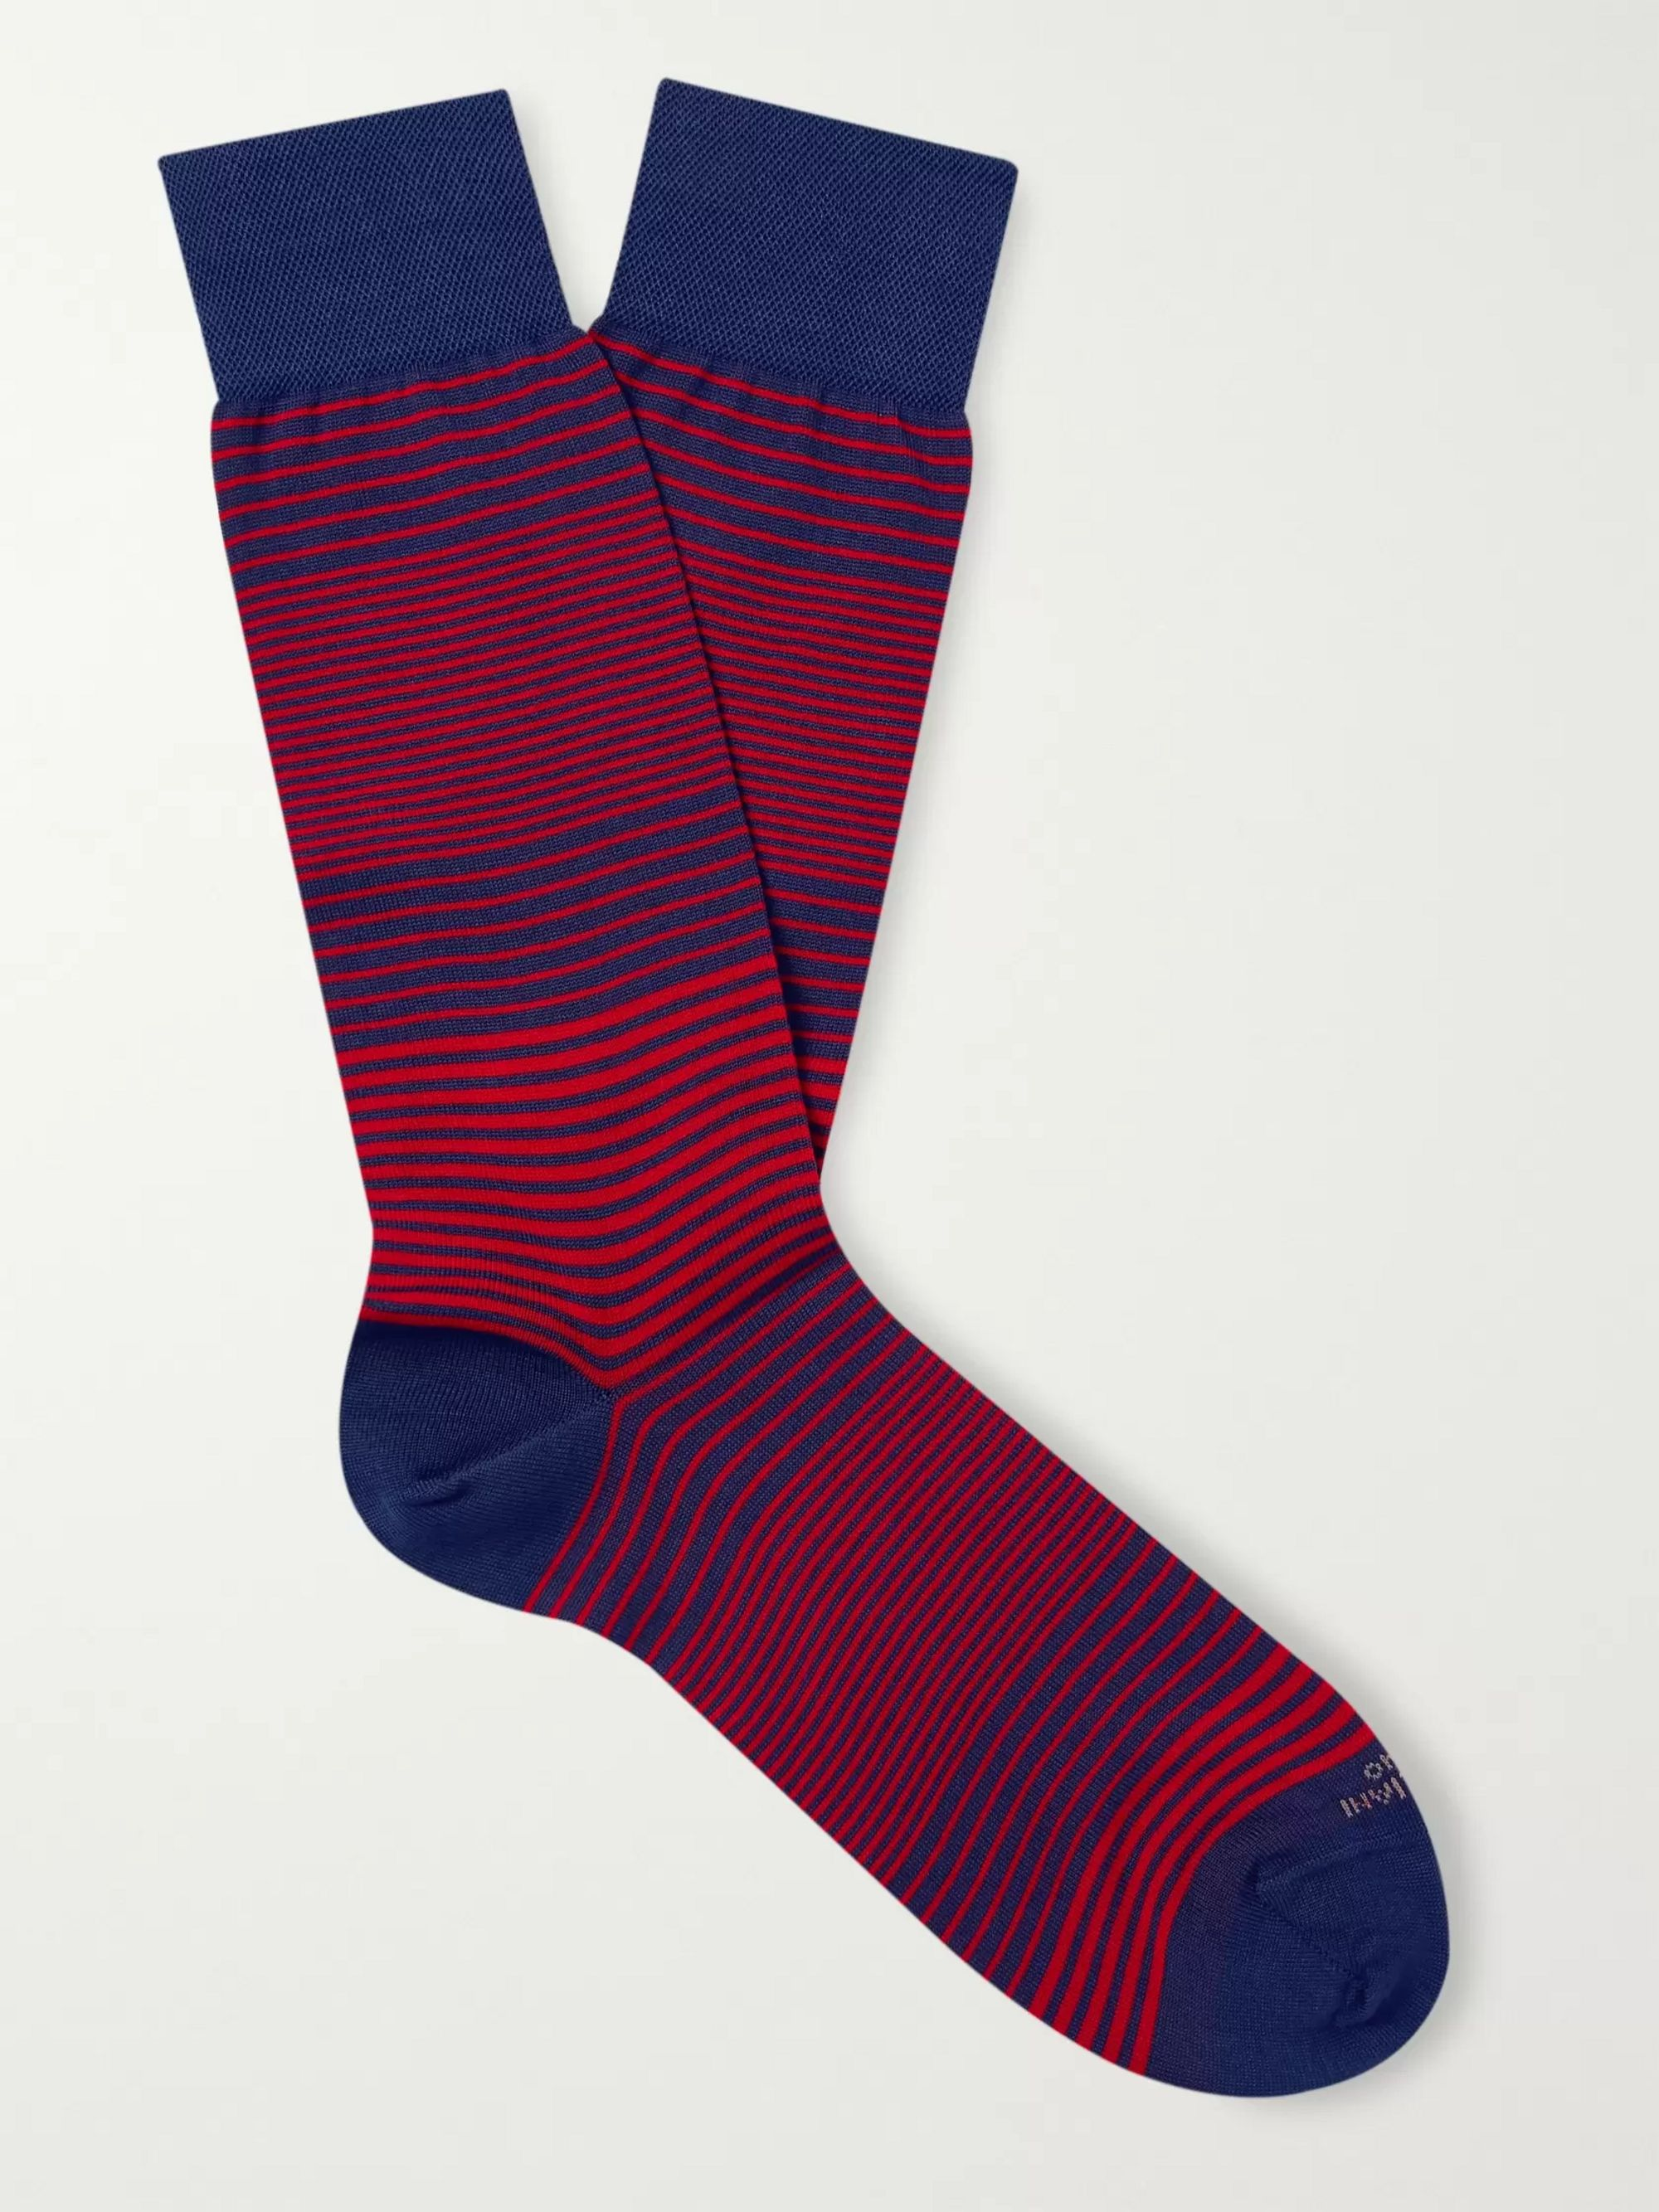 Marcoliani Marina Striped Cotton-Blend Socks